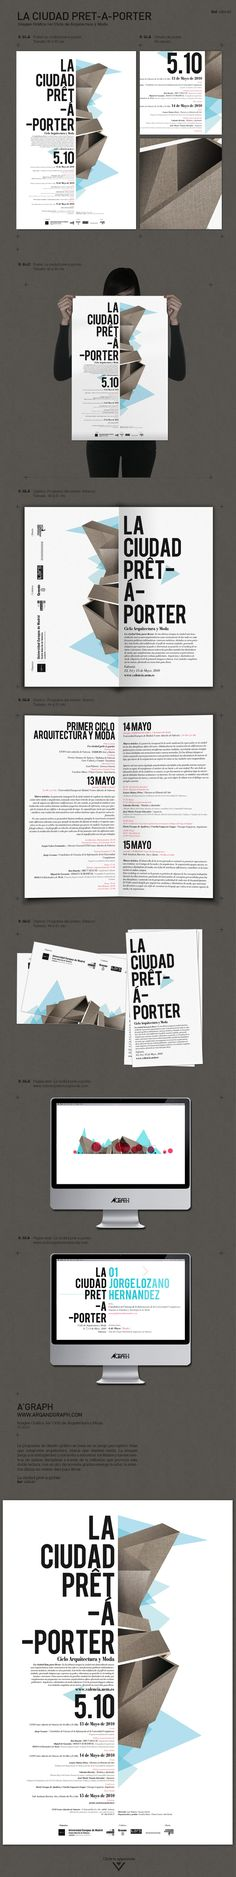 La ciudad prêt-á-porter by Estudio AGraph , via Behance